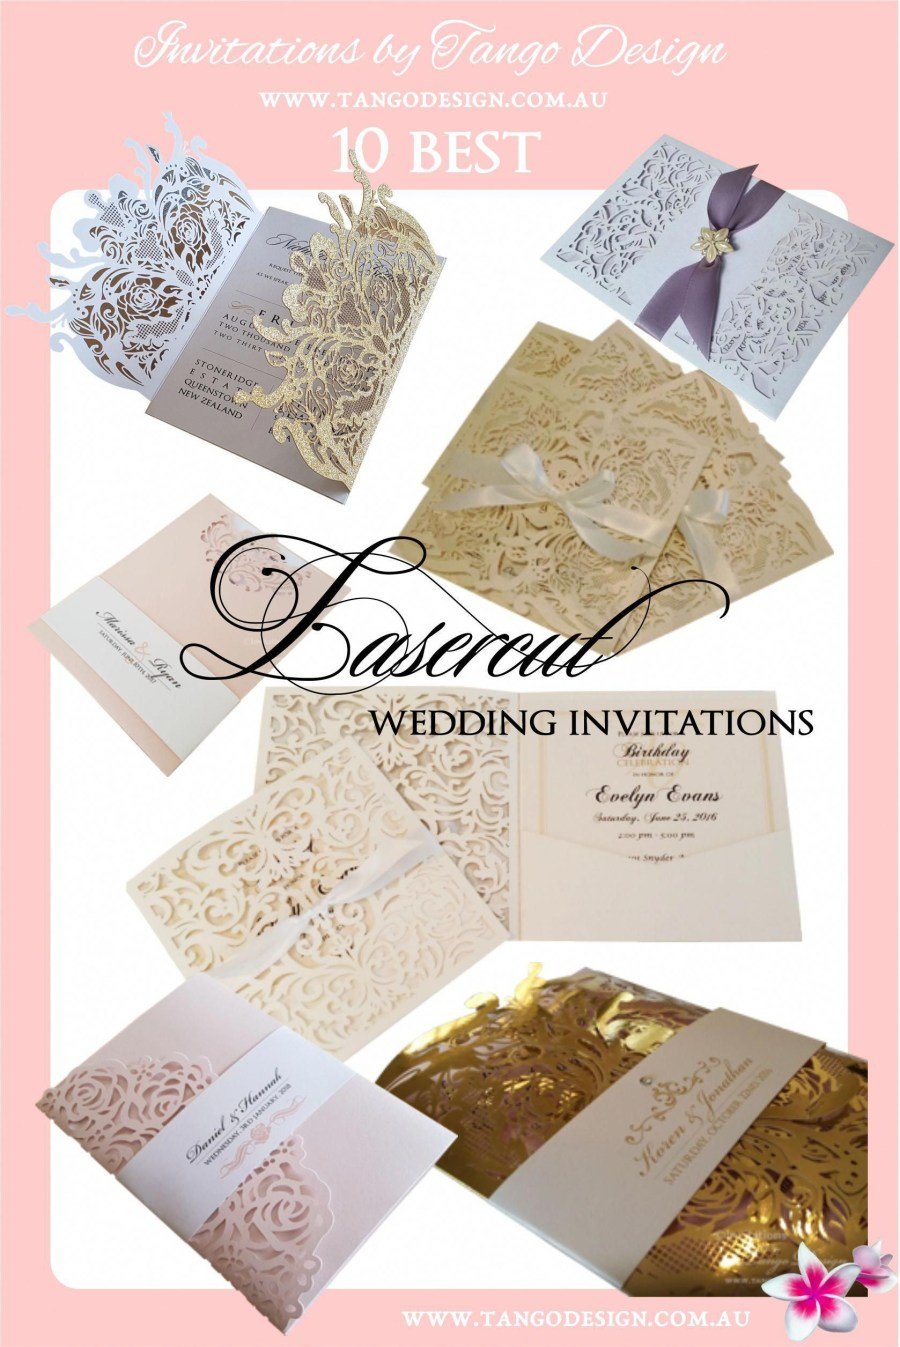 Amazing Wedding Invitations Some Of Our Amazing Wedding Invitations Custom Made For Each